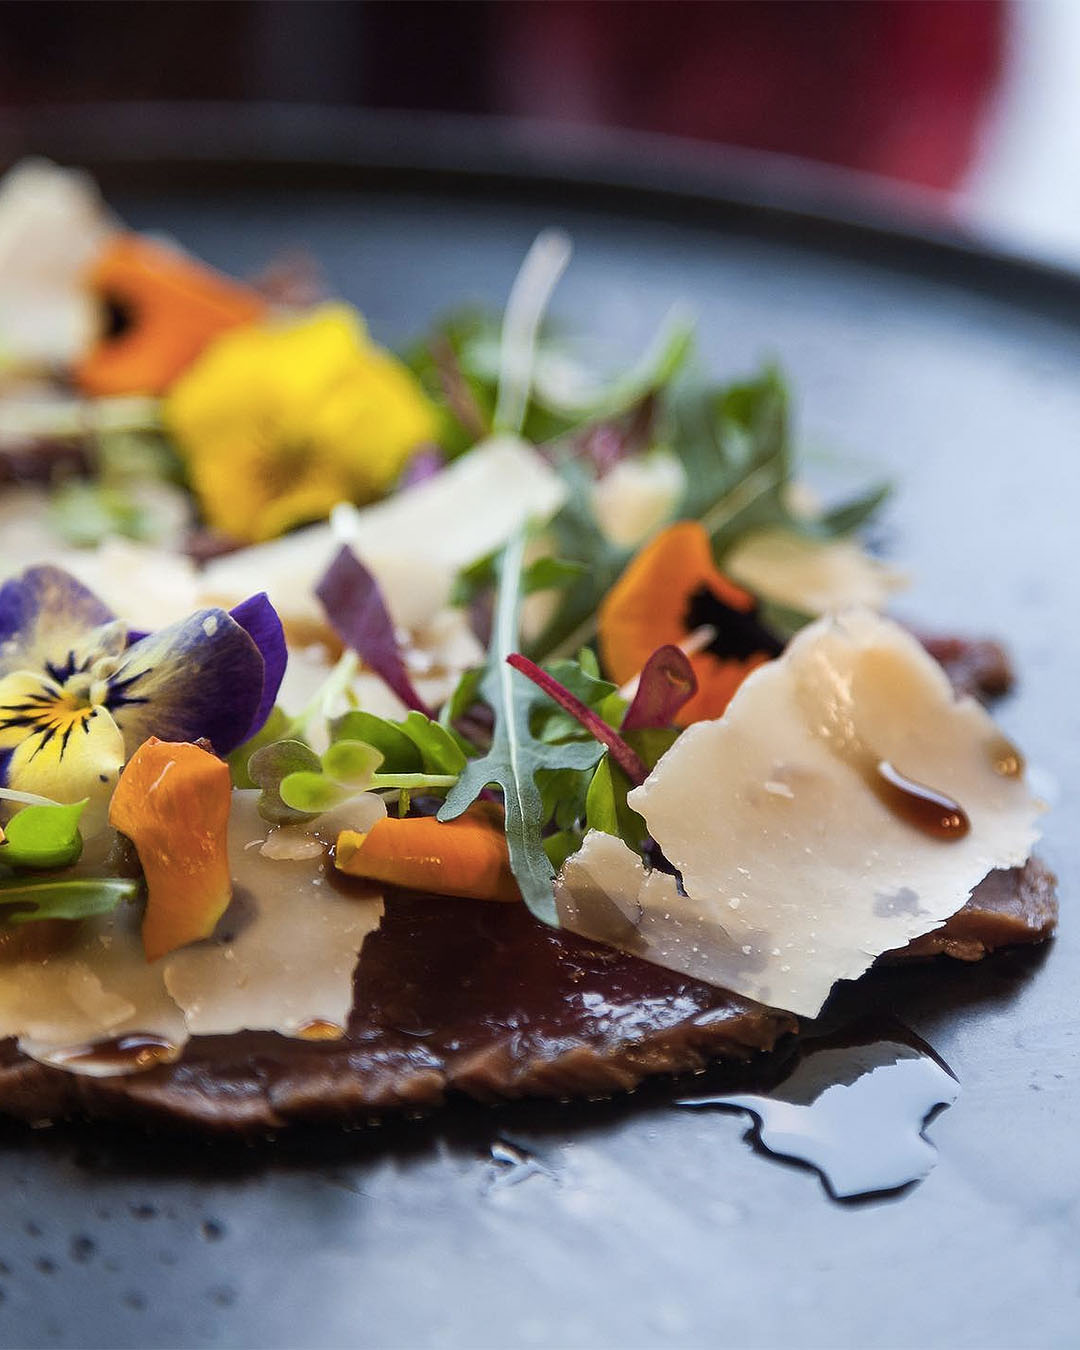 A delicious looking dish at The Monday Room.